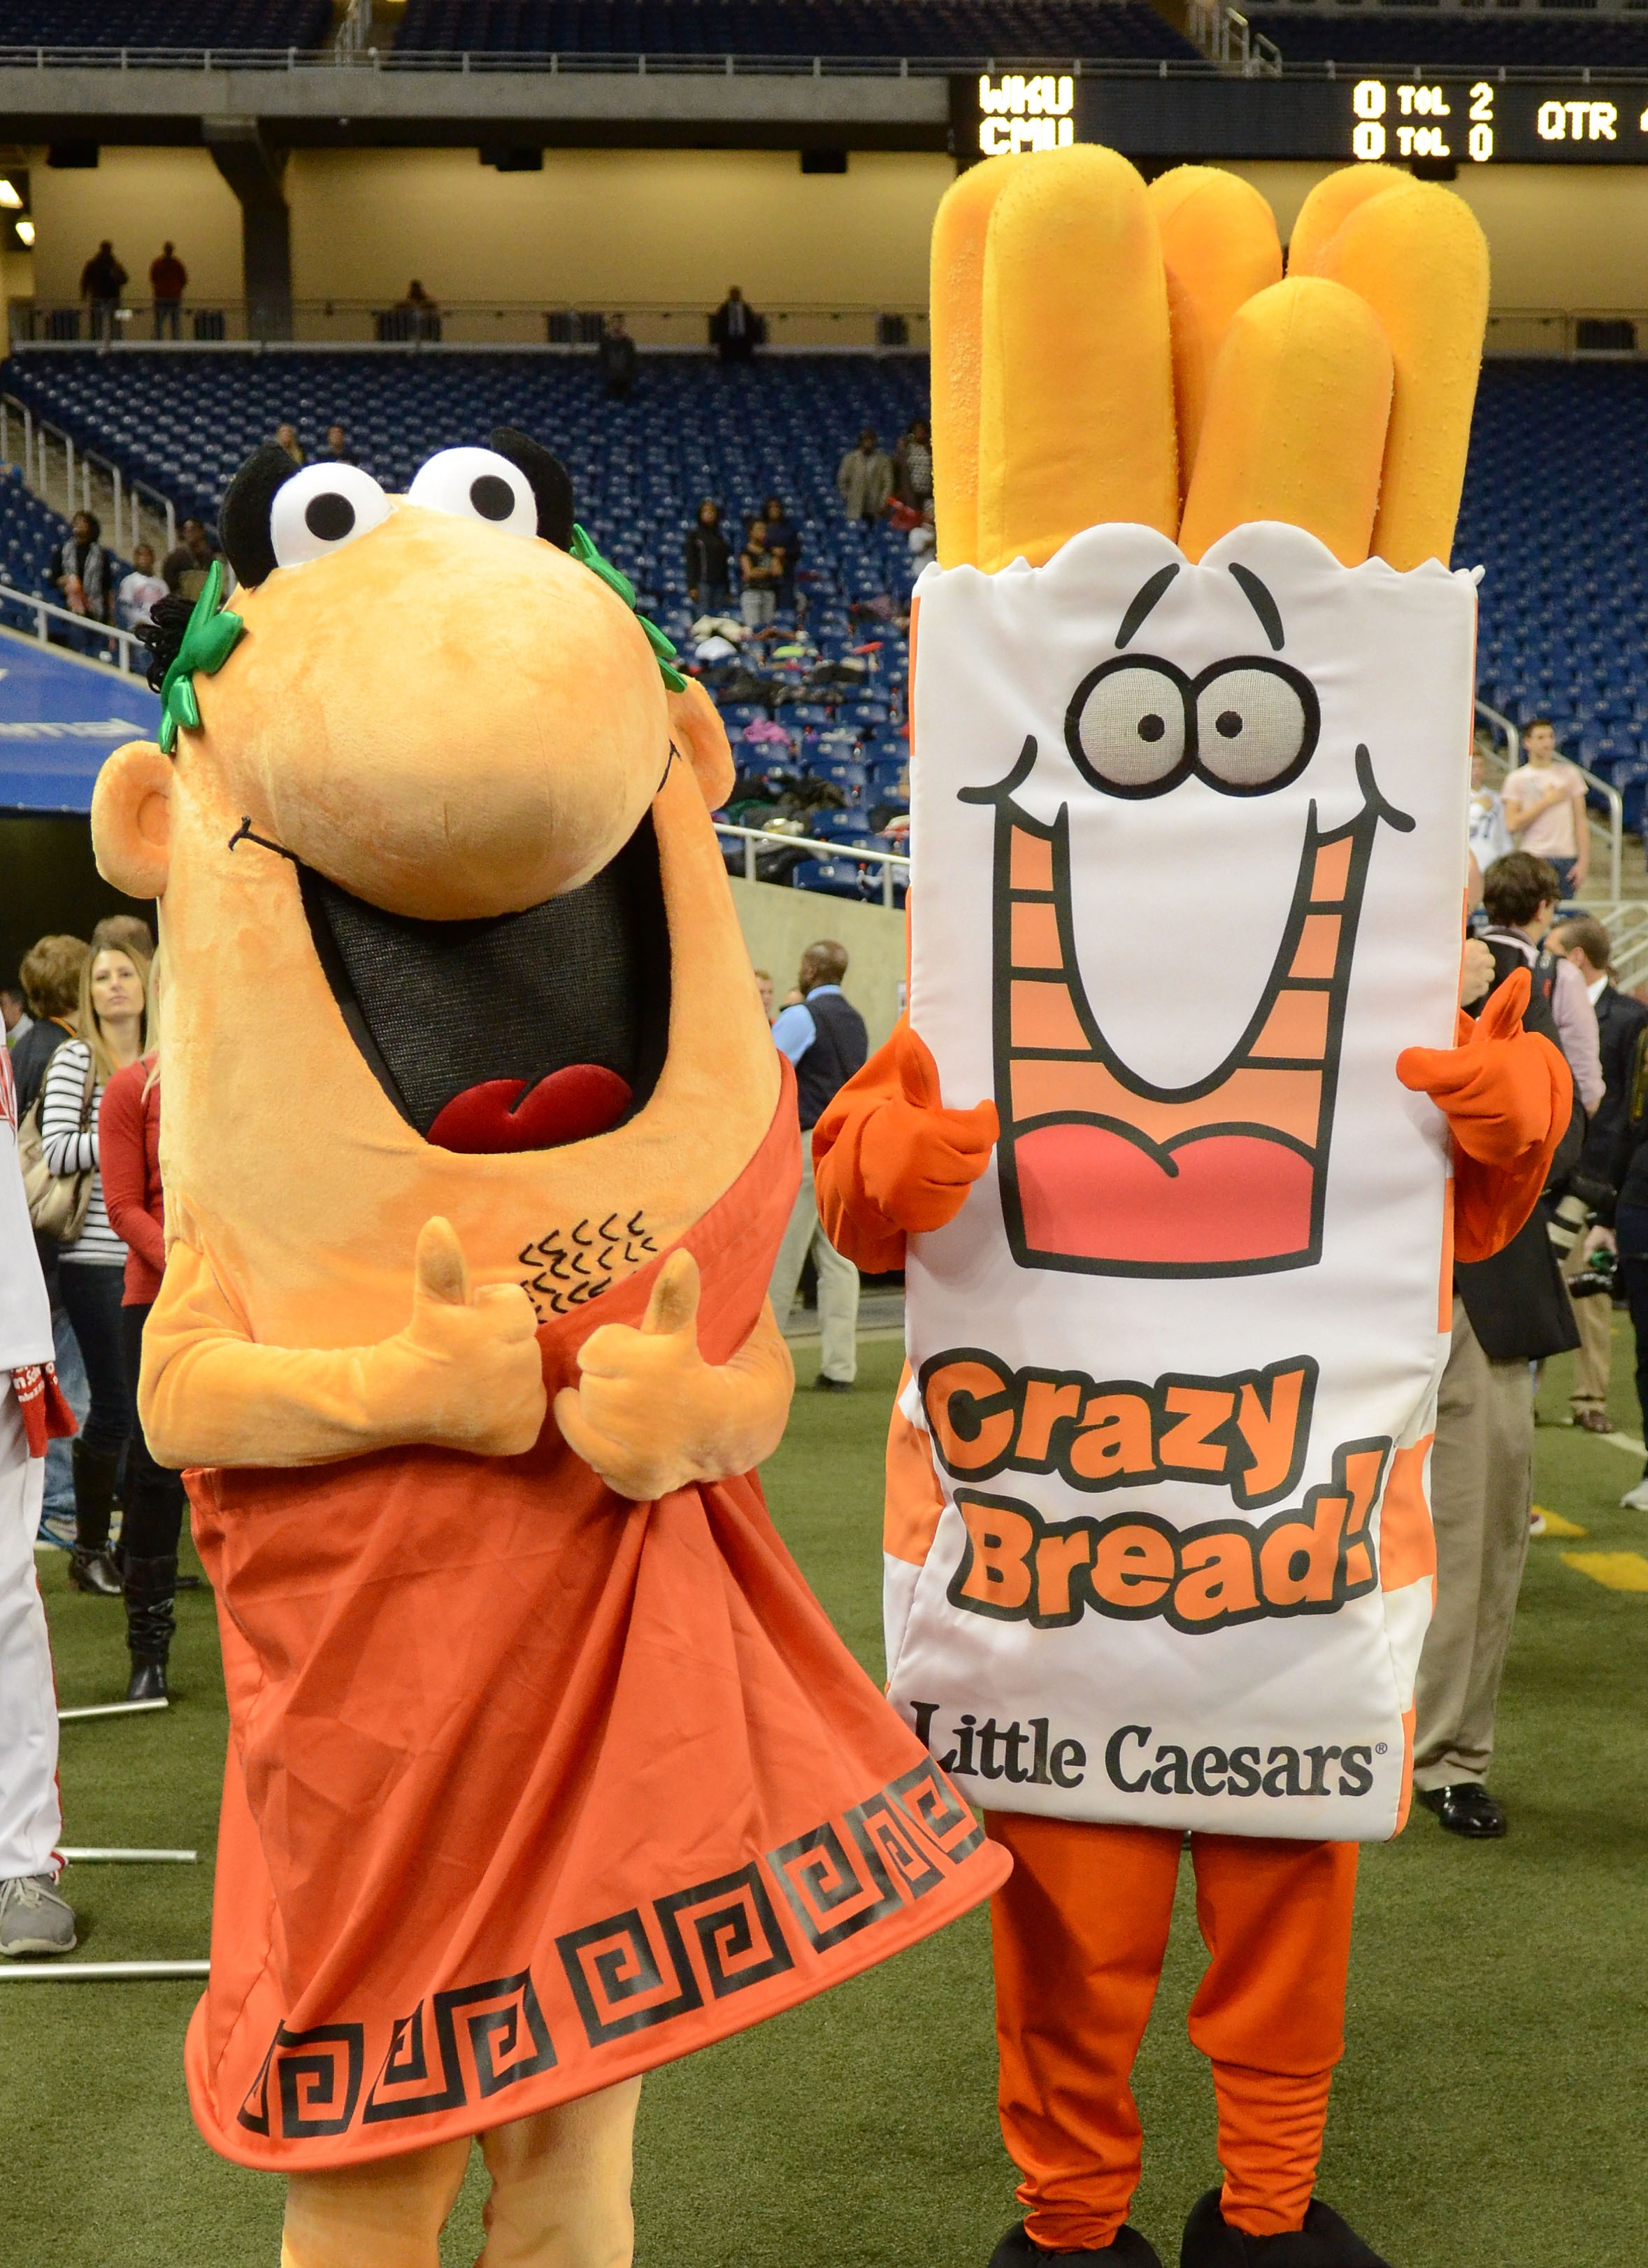 4. Little Caesar and his lesser known but still beloved companion Walking Bag of Crazy Bread (Little Caesars Bowl): at least they're trying.                                                                  (via Getty Images)